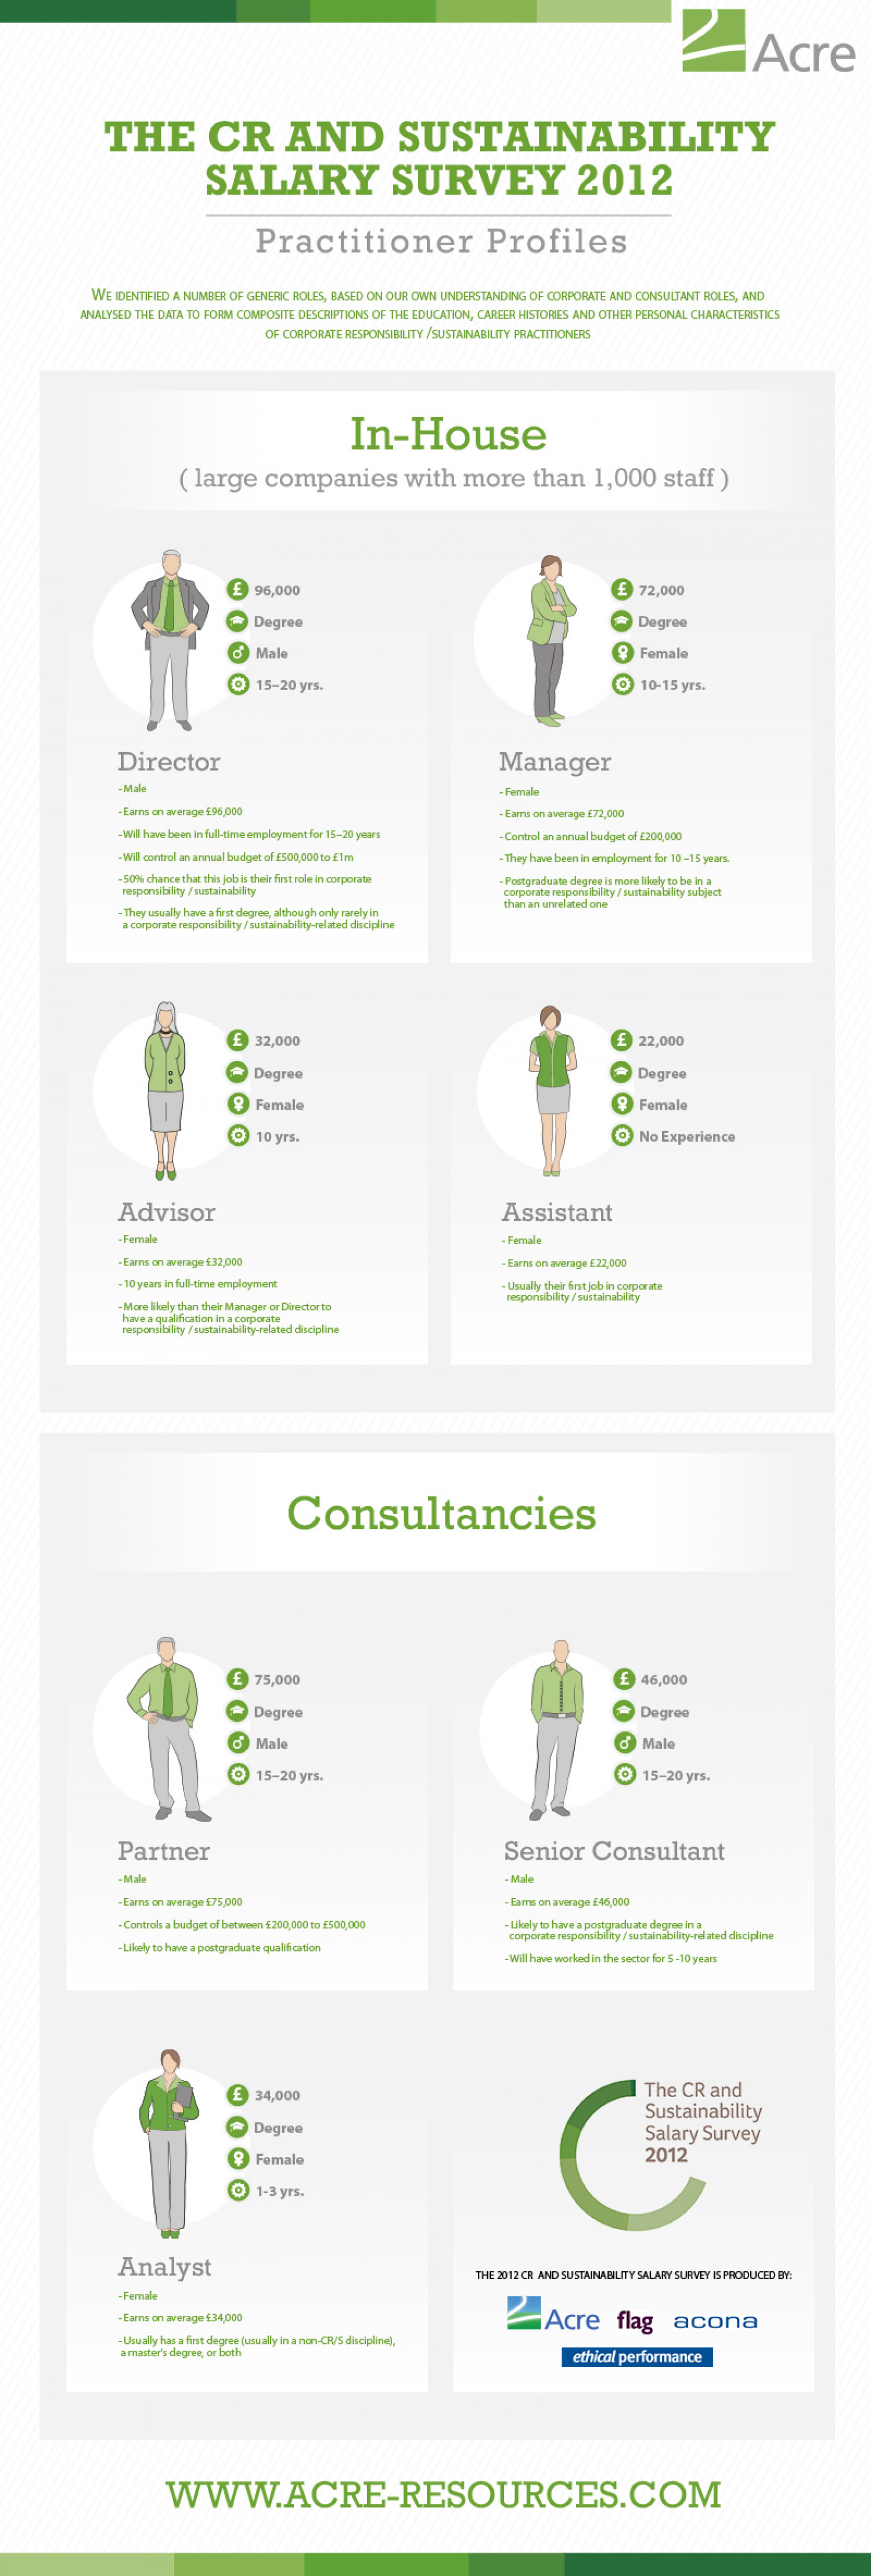 Corporate Responsibility & Sustainability Practitioner Profiles Infographic